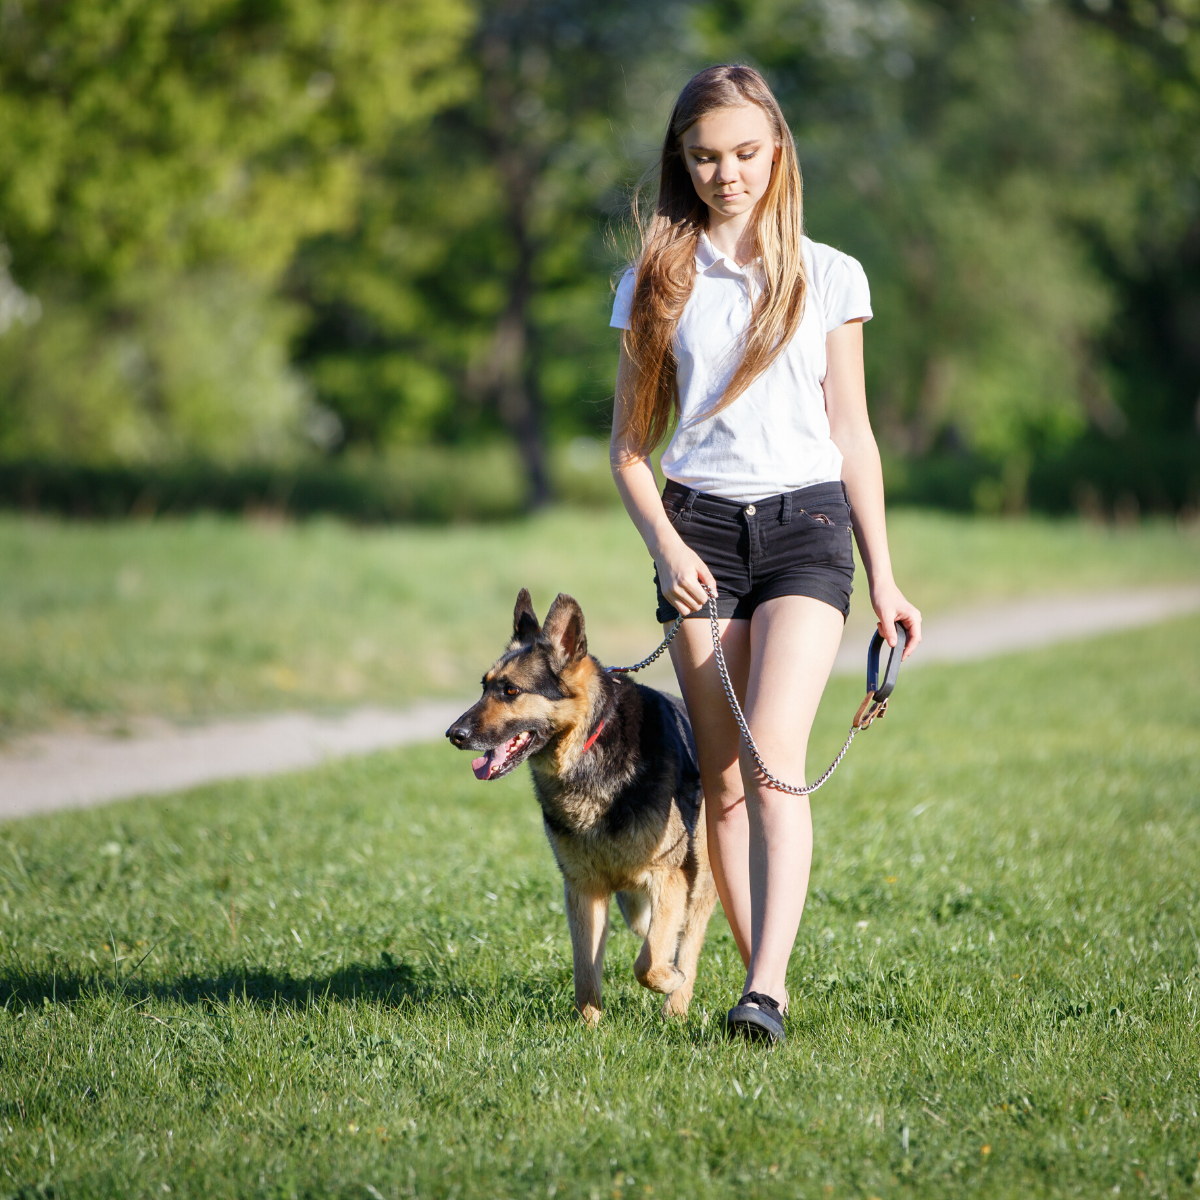 Young woman walking large dog on lead